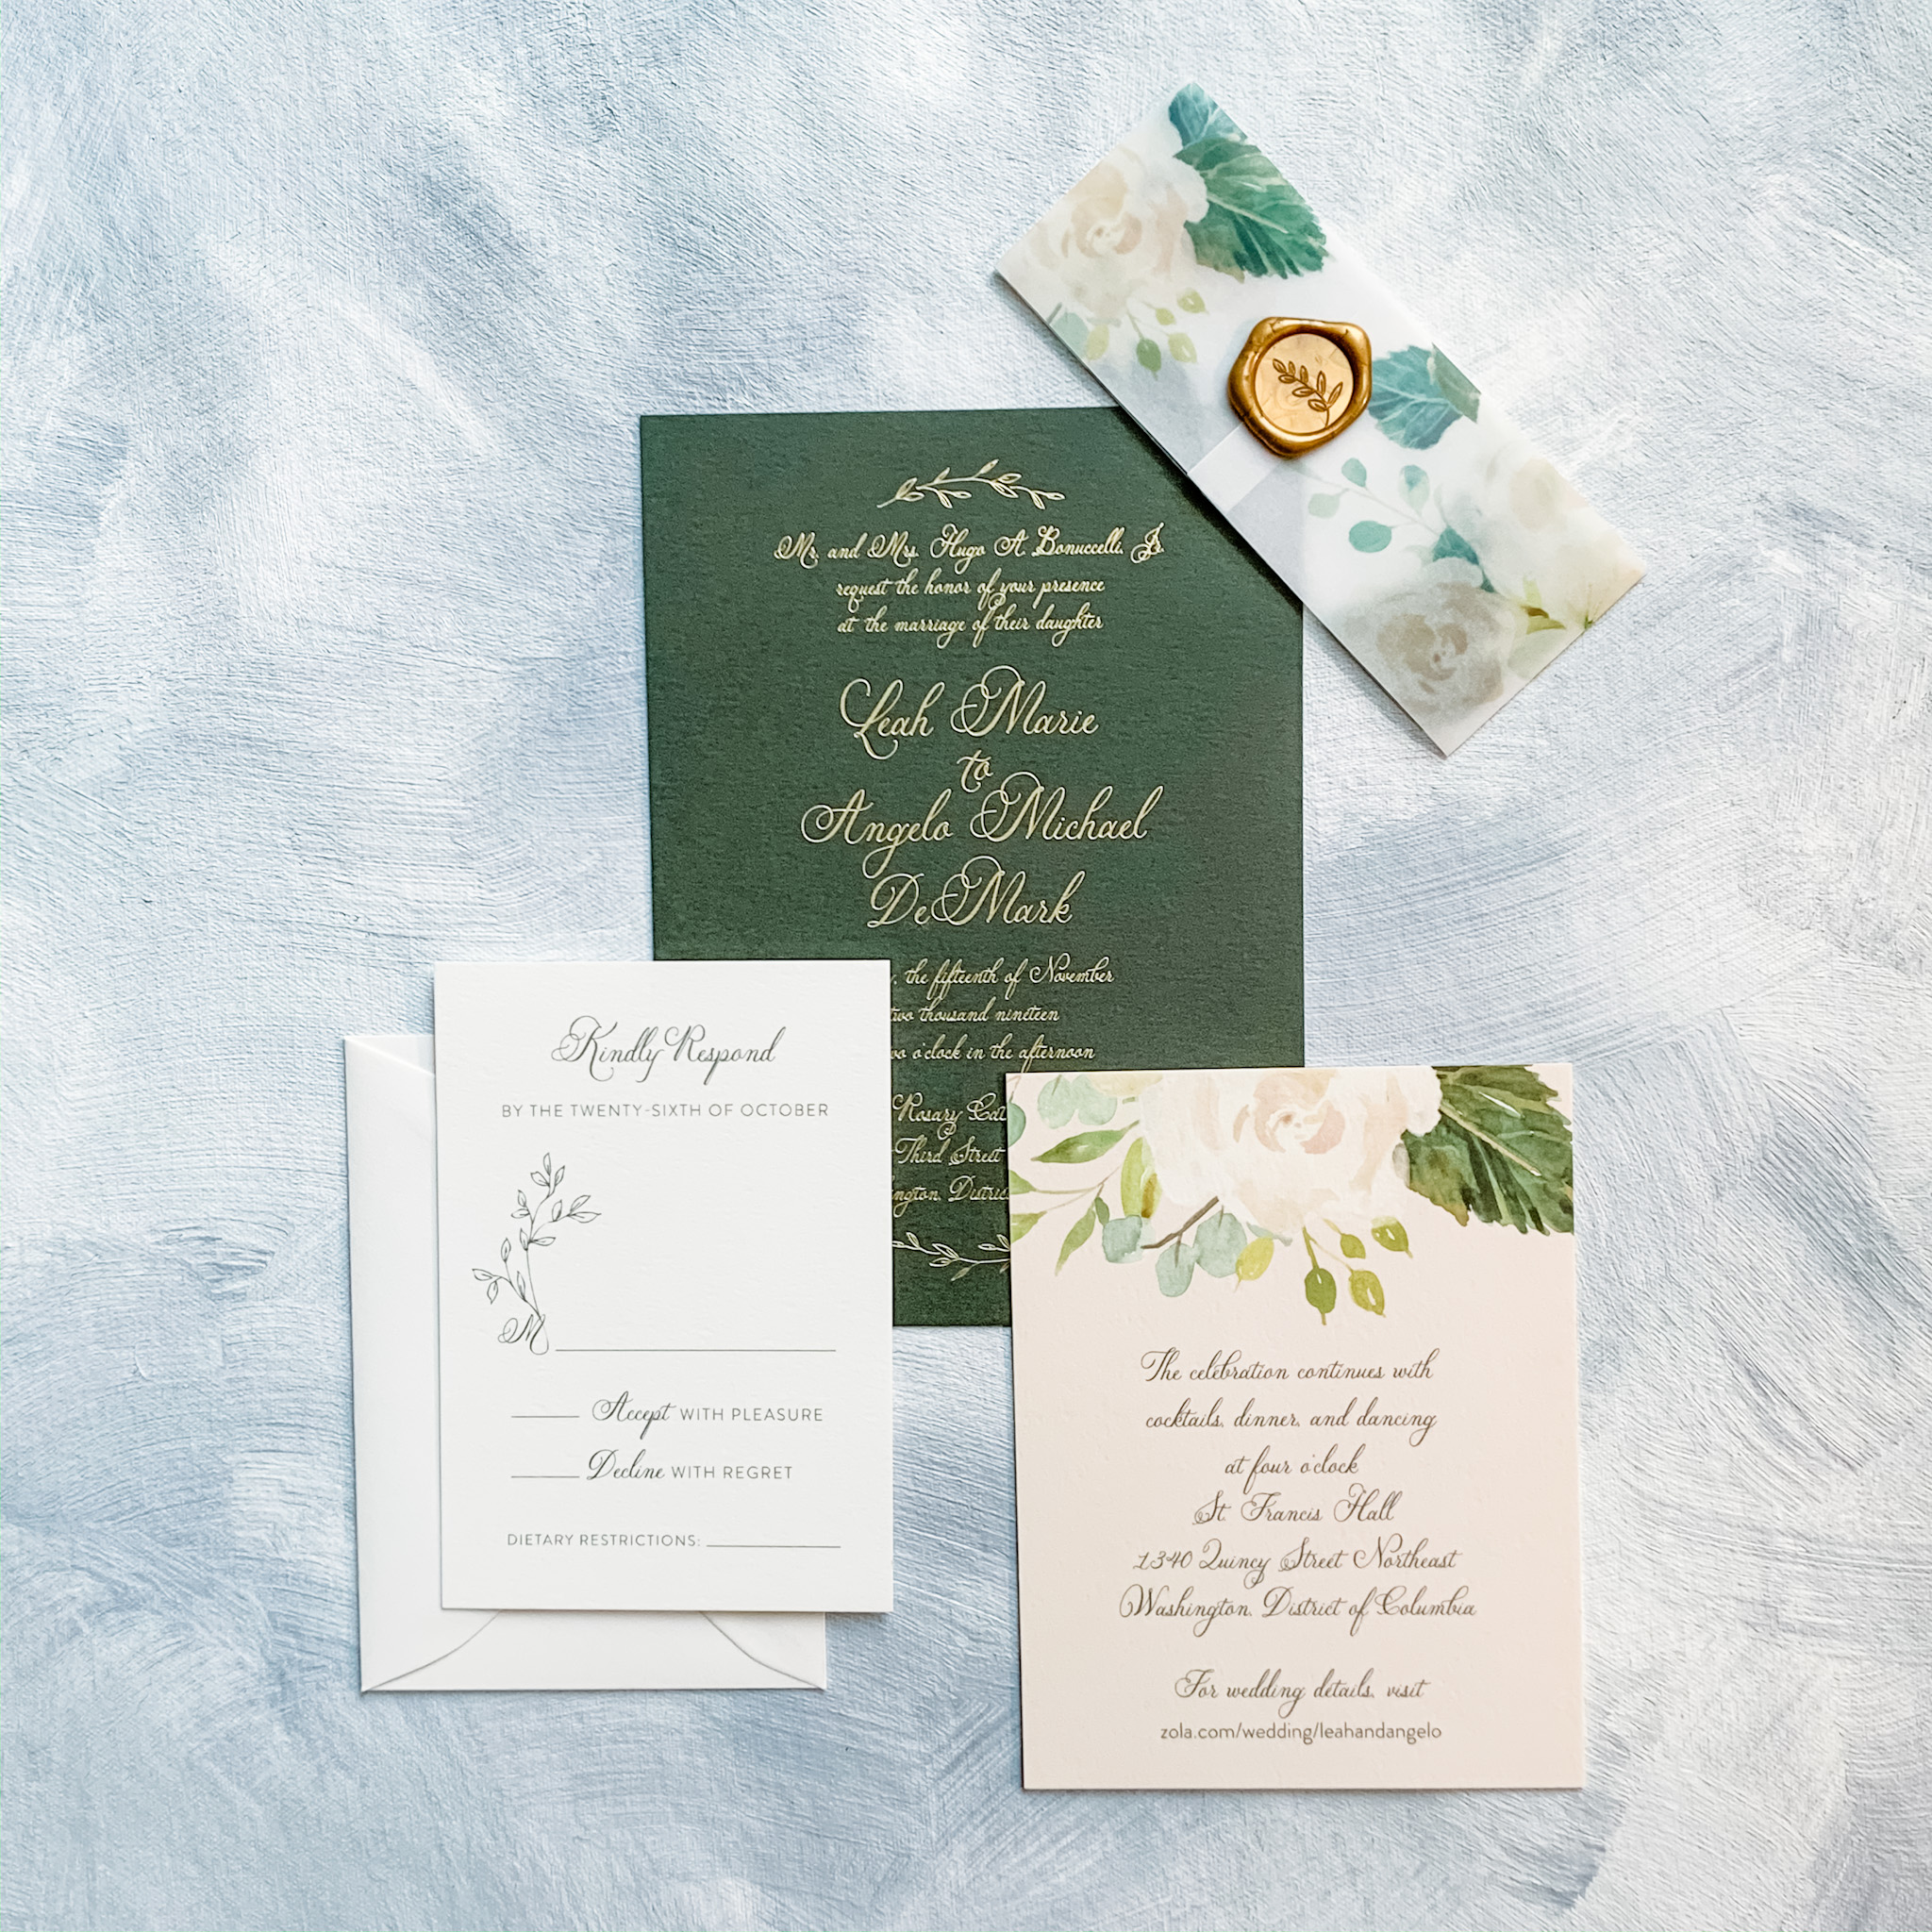 Green card with gold foil stamping makes a bold statement that is softened by a pretty blush floral print vellum belly band and gold wax seal.